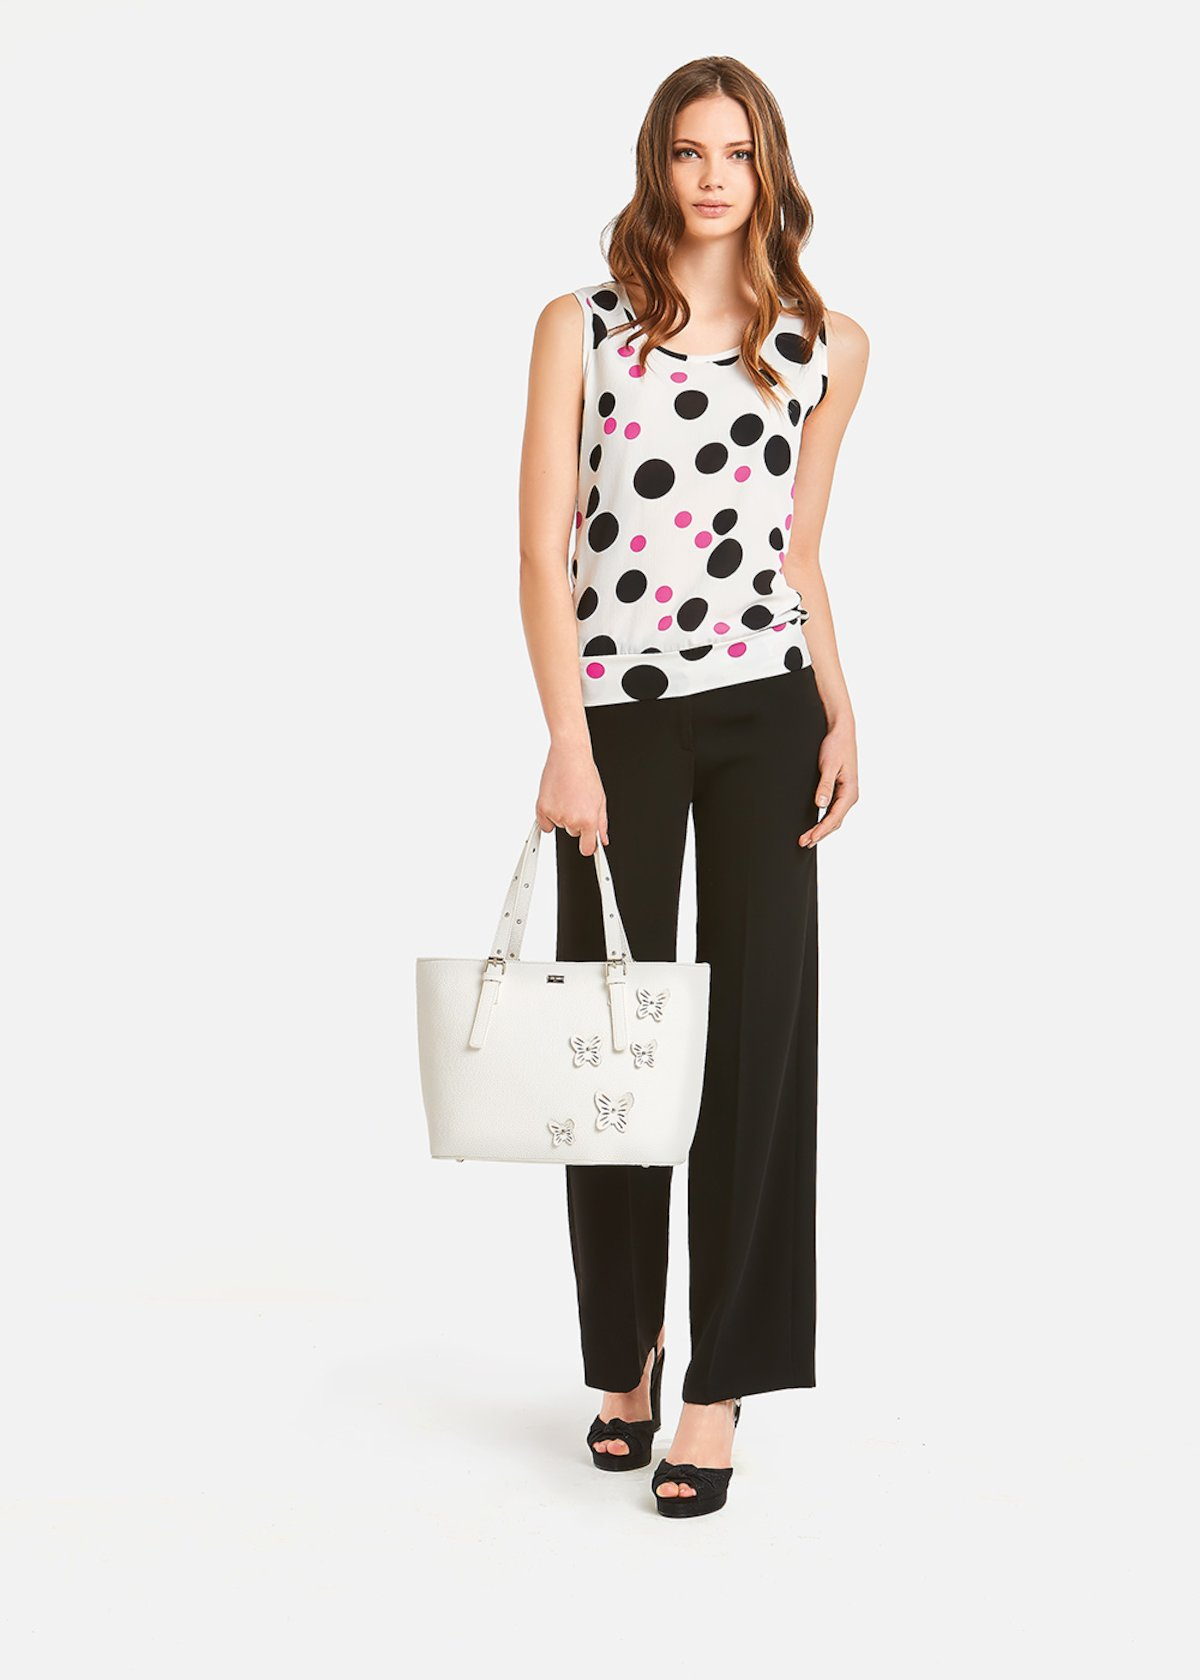 Timmy Top polka dot pattern - White / Black Pois